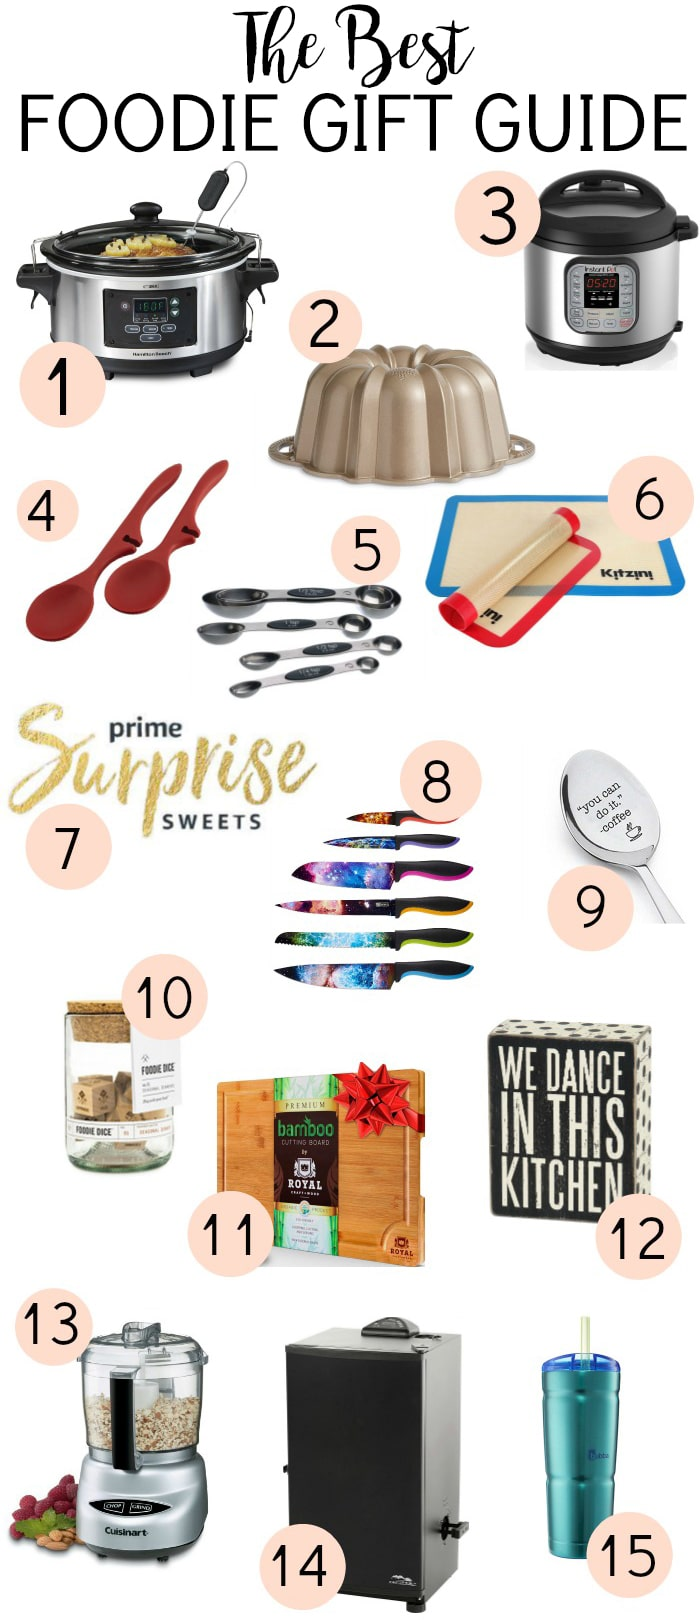 The Best Foodie Gift Guide will make it easy to find the perfect present for the food and kitchen gadget lovers in your life! | www.persnicketyplates.com